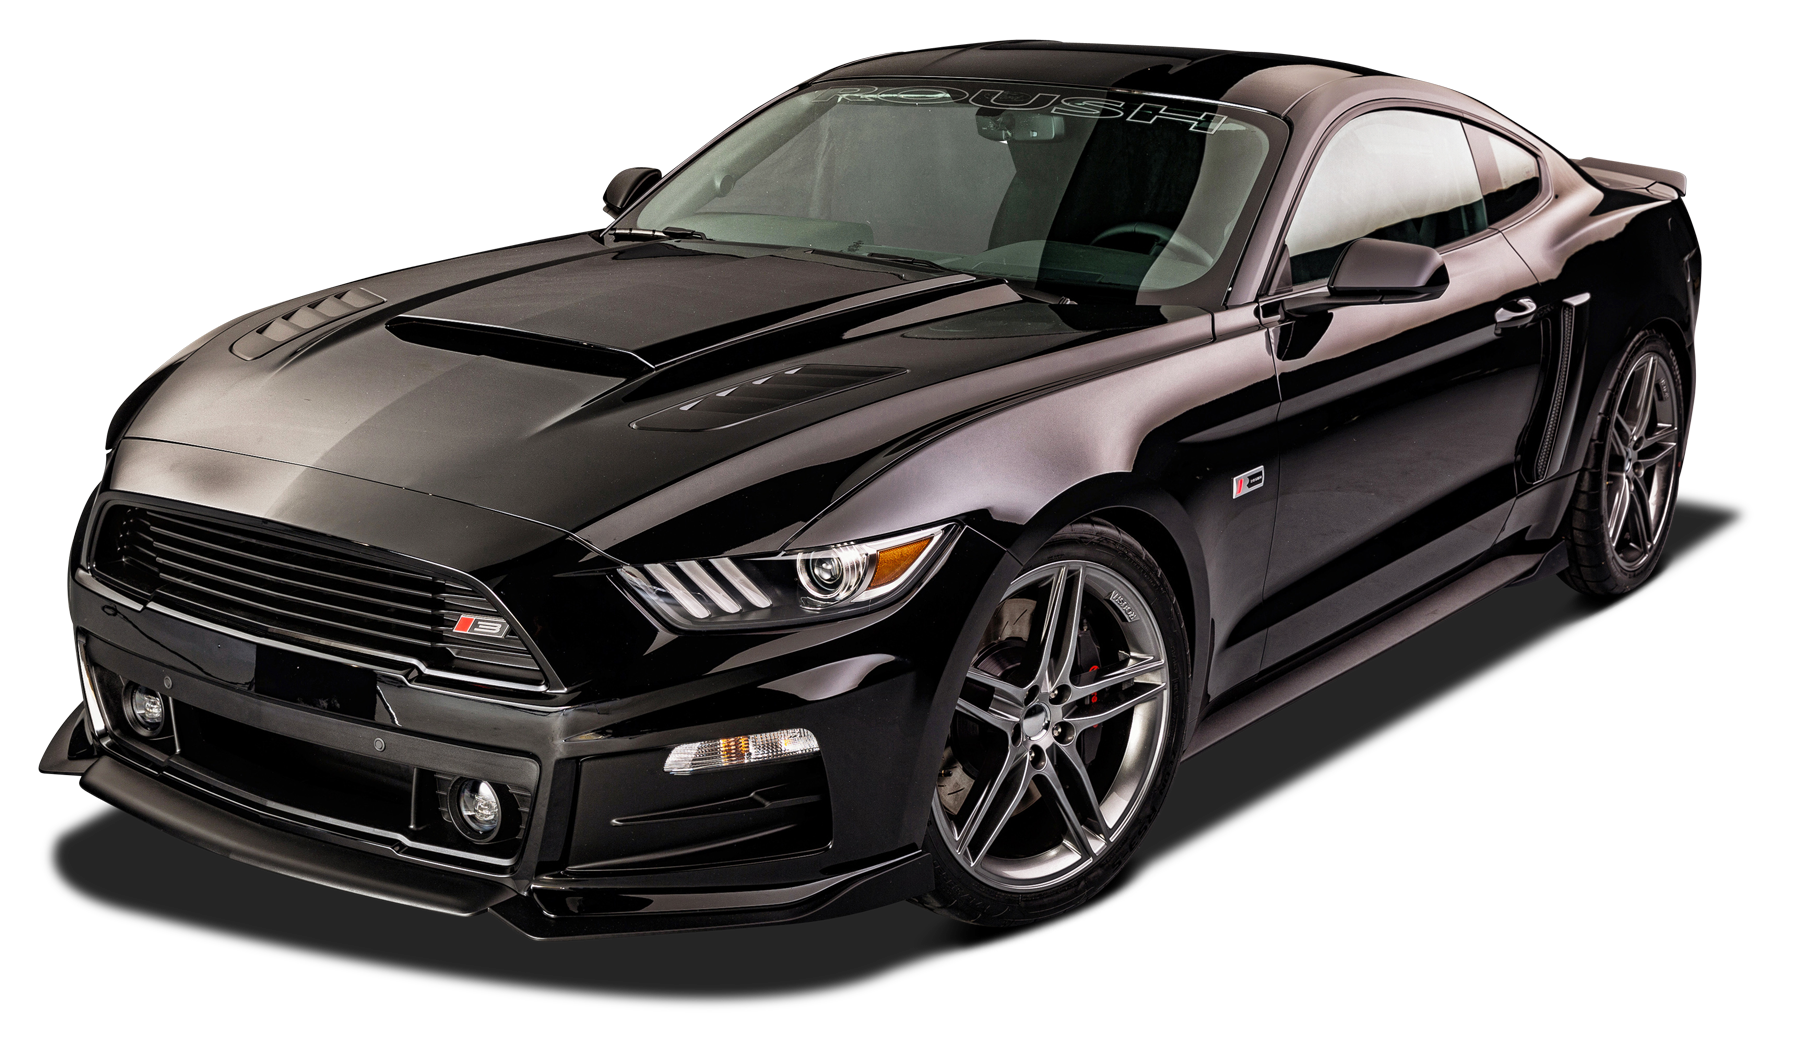 Stylish Black Ford Roush RS Mustang Car